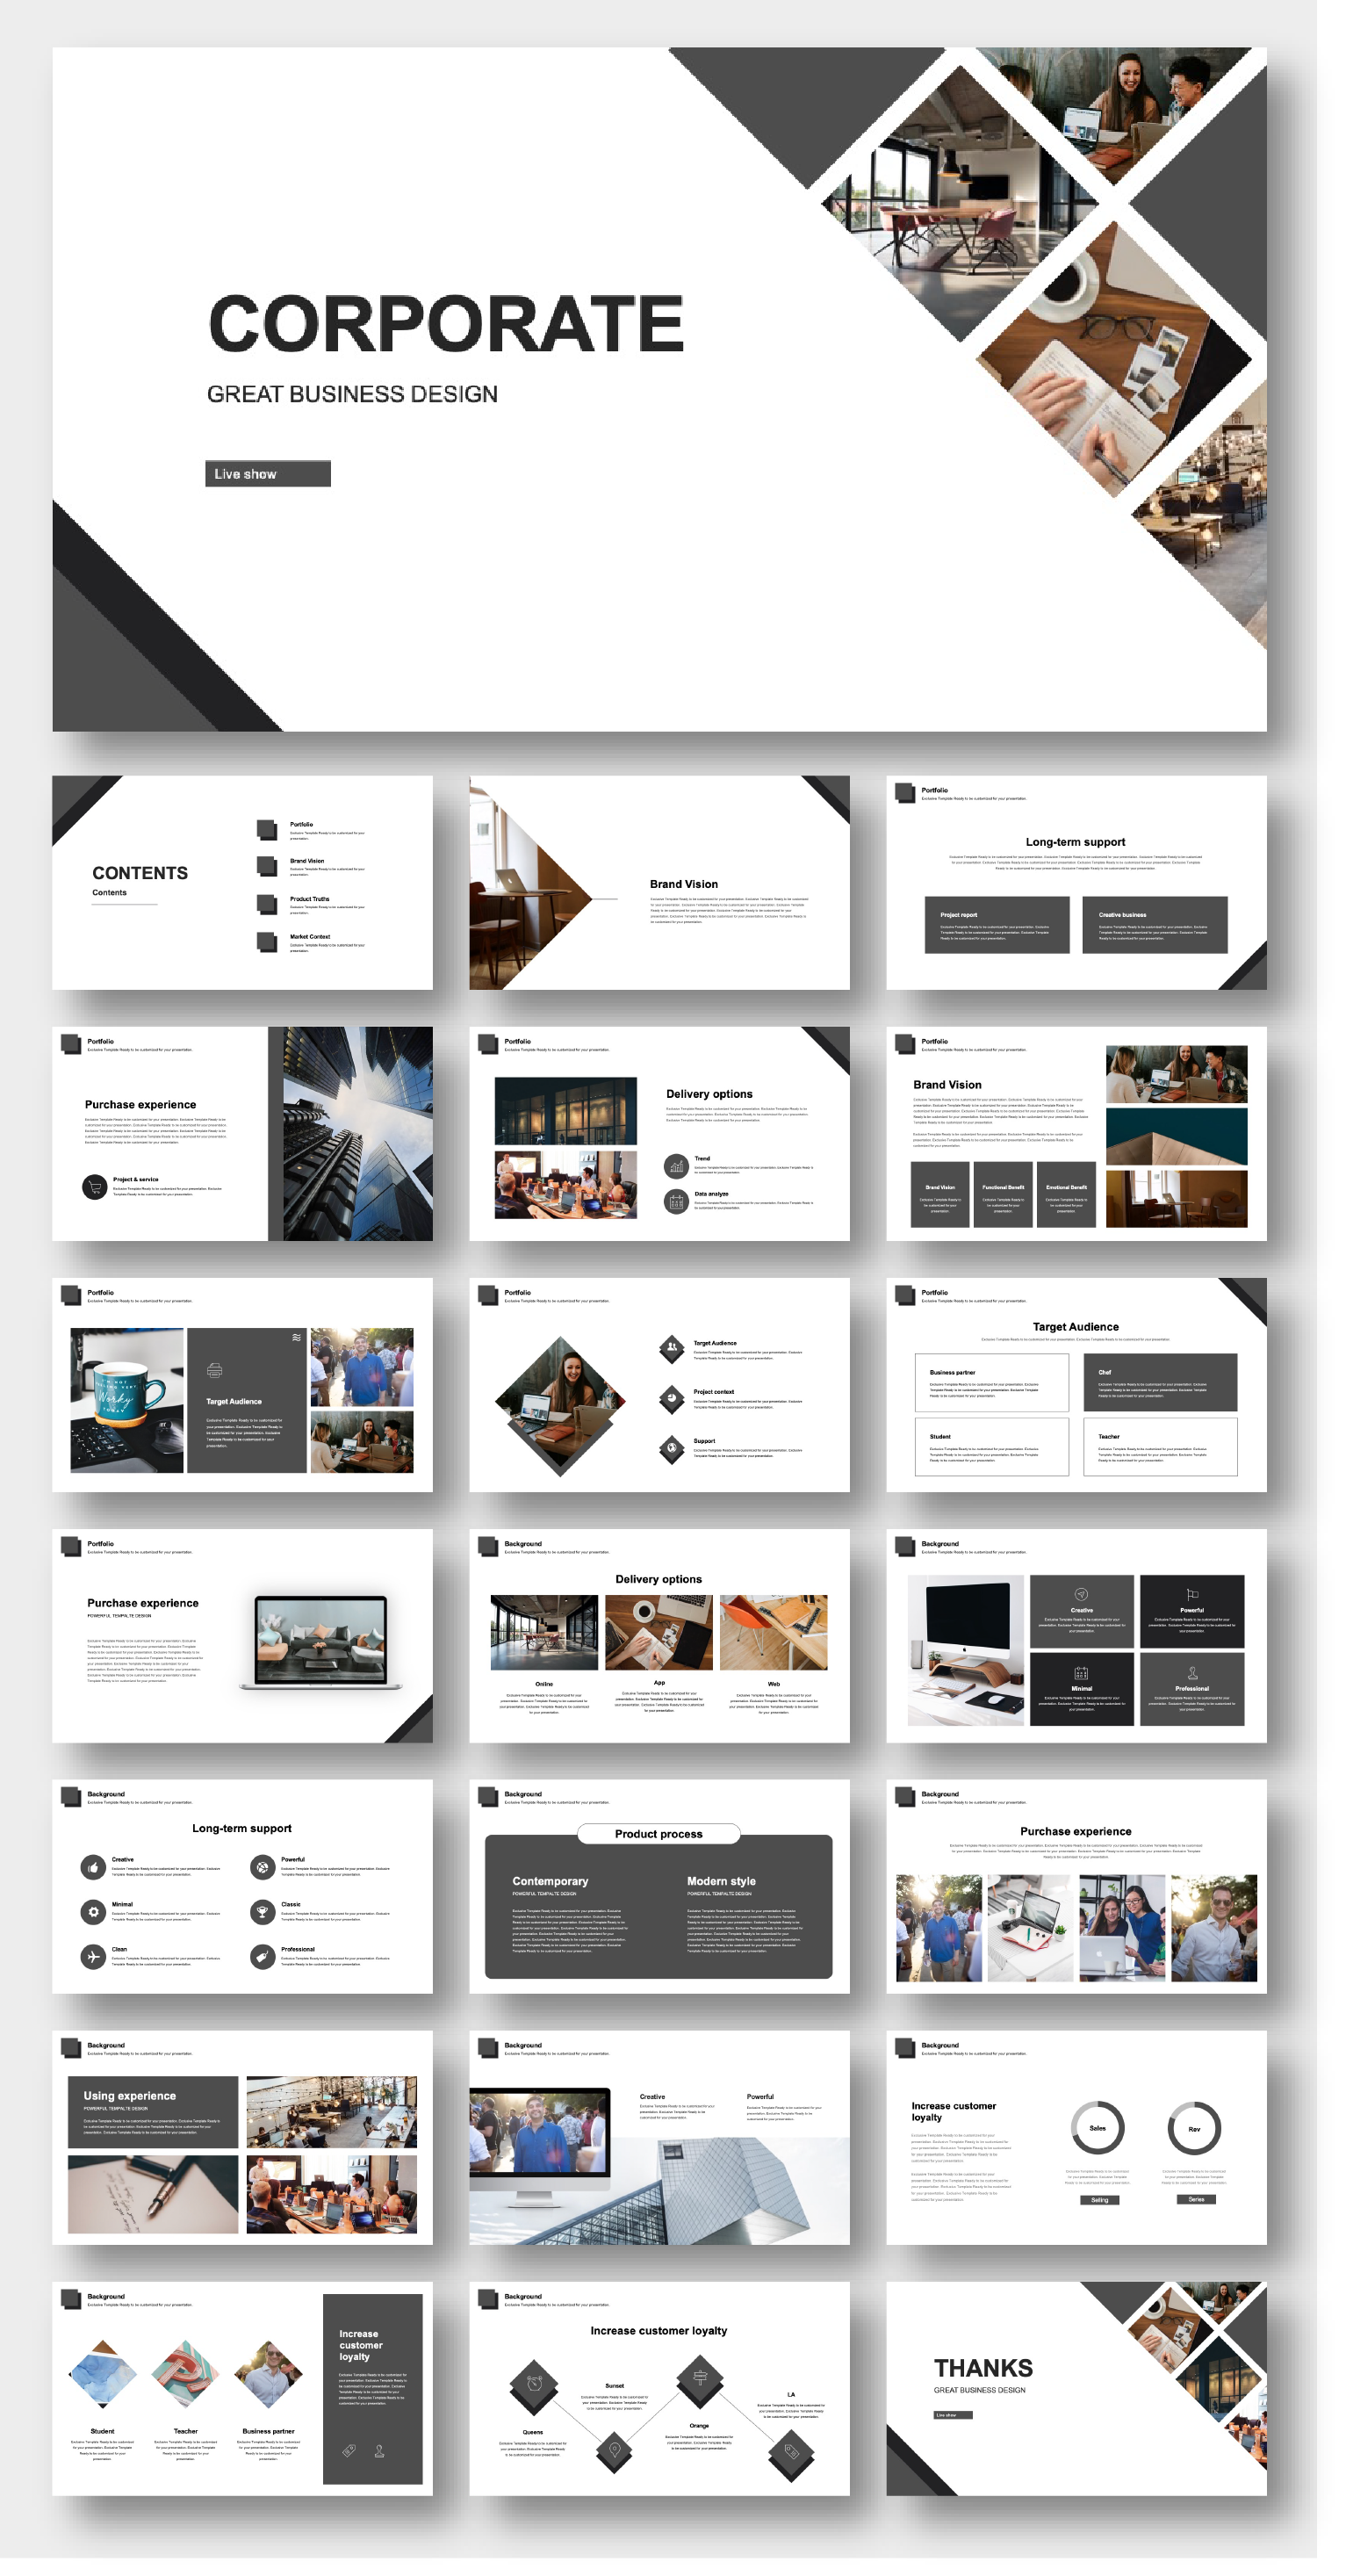 Creative Corporate Annual Project Report Template – Original and High Quality PowerPoint Templates